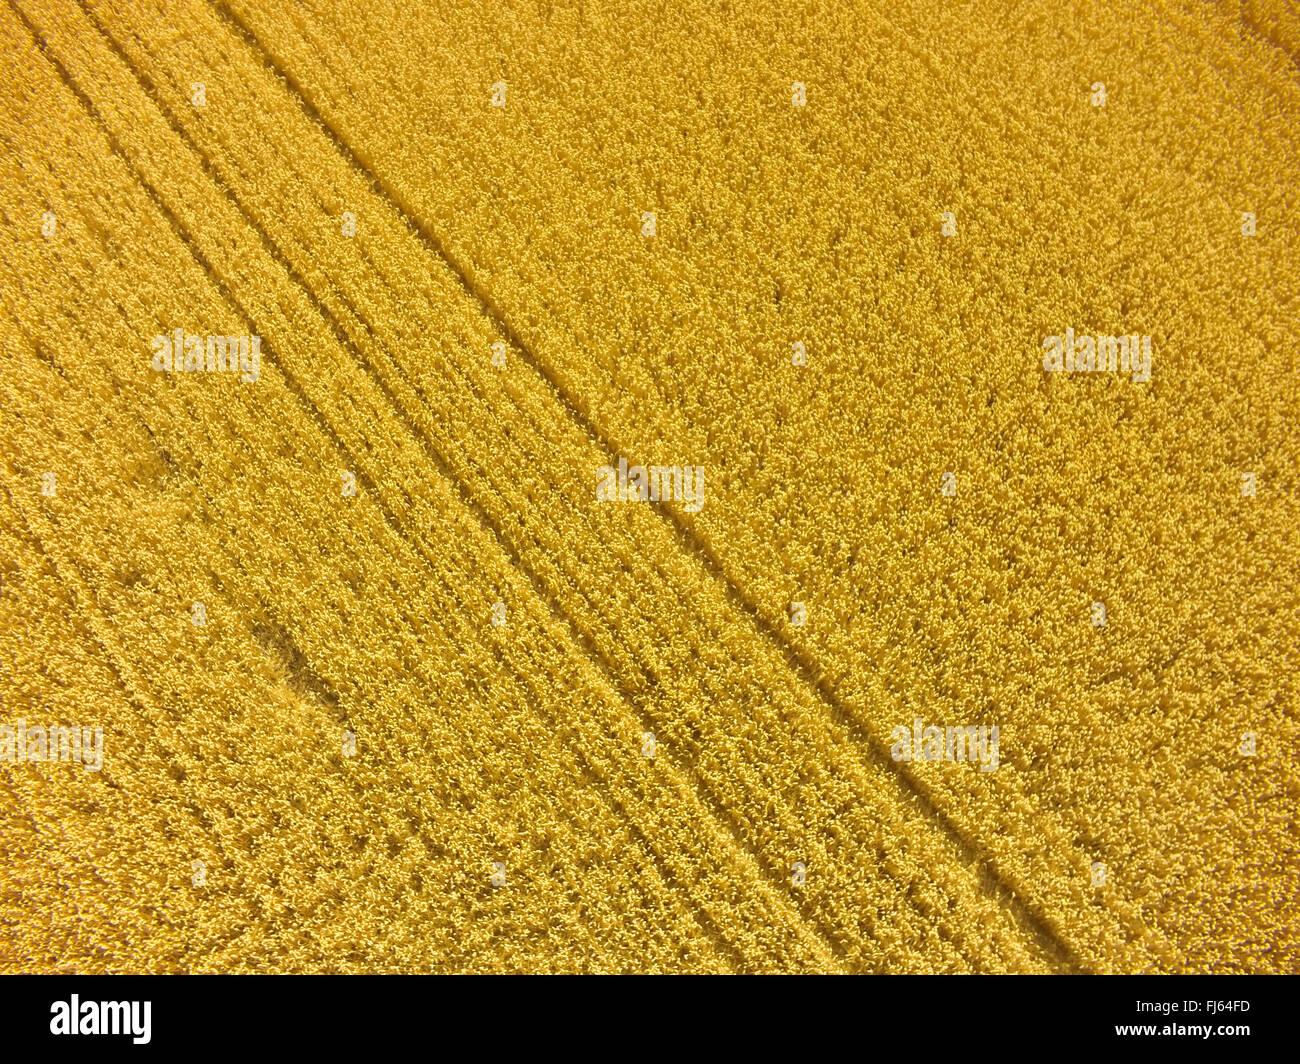 mature wheat field, air photo, 23.07.2015, aerial view , Germany, Baden-Wuerttemberg, Odenwald - Stock Image